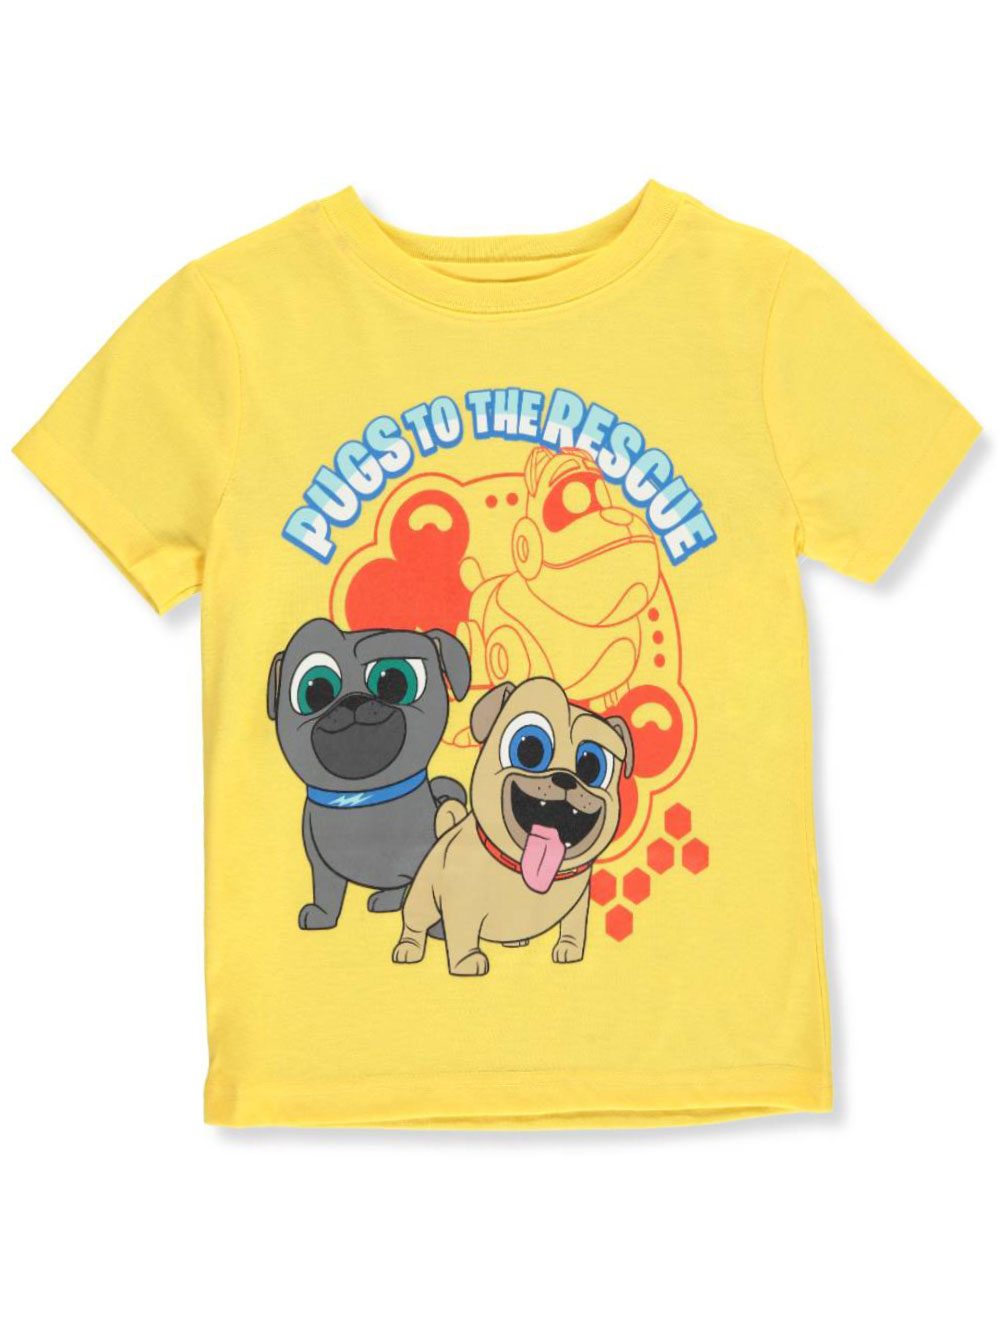 Puppy Dog Pals Characters Boy/'s T-Shirt